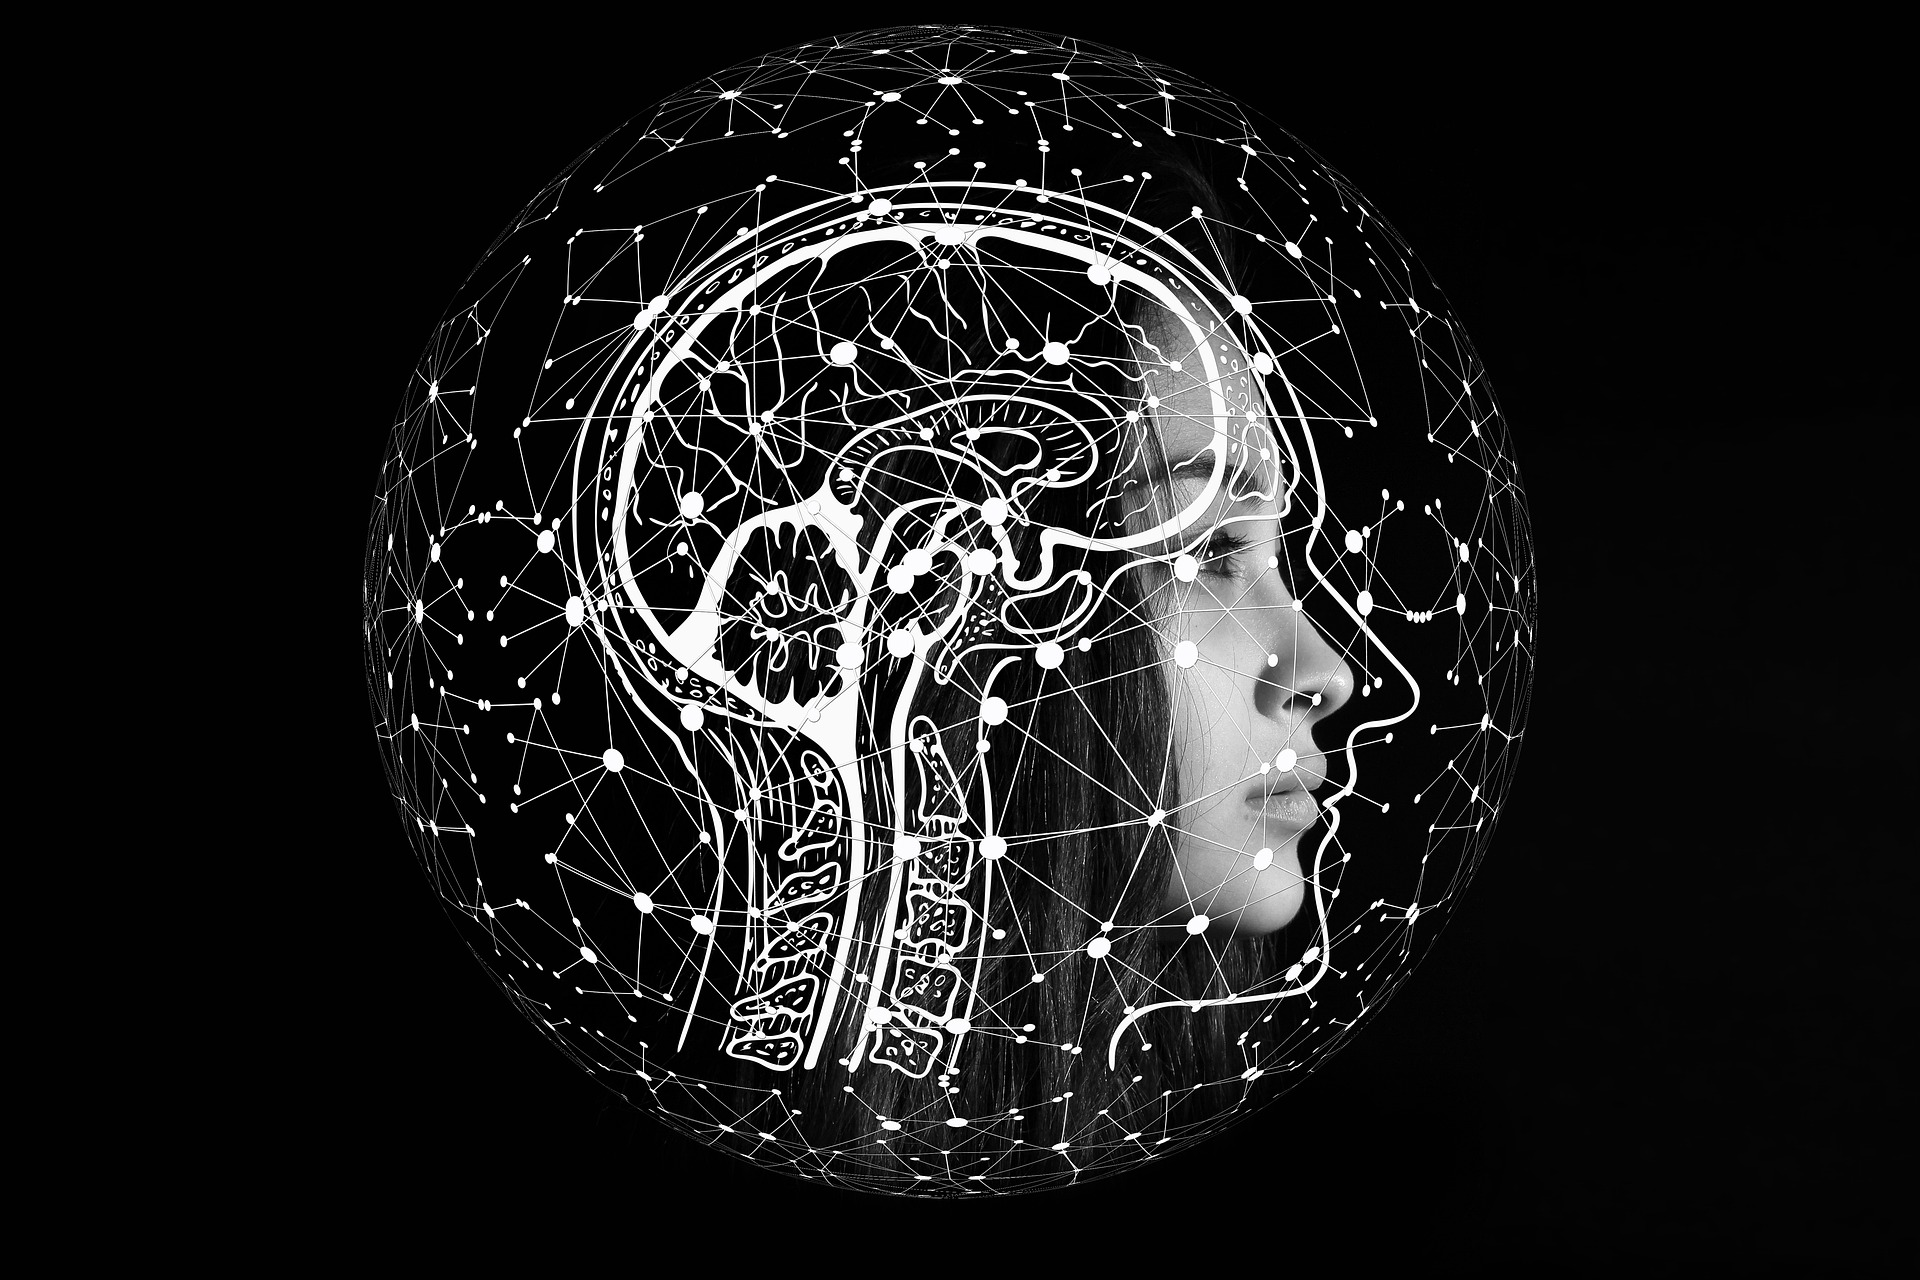 Medical Technology Research Grants for Neurological Diseases and Mental Illnesses